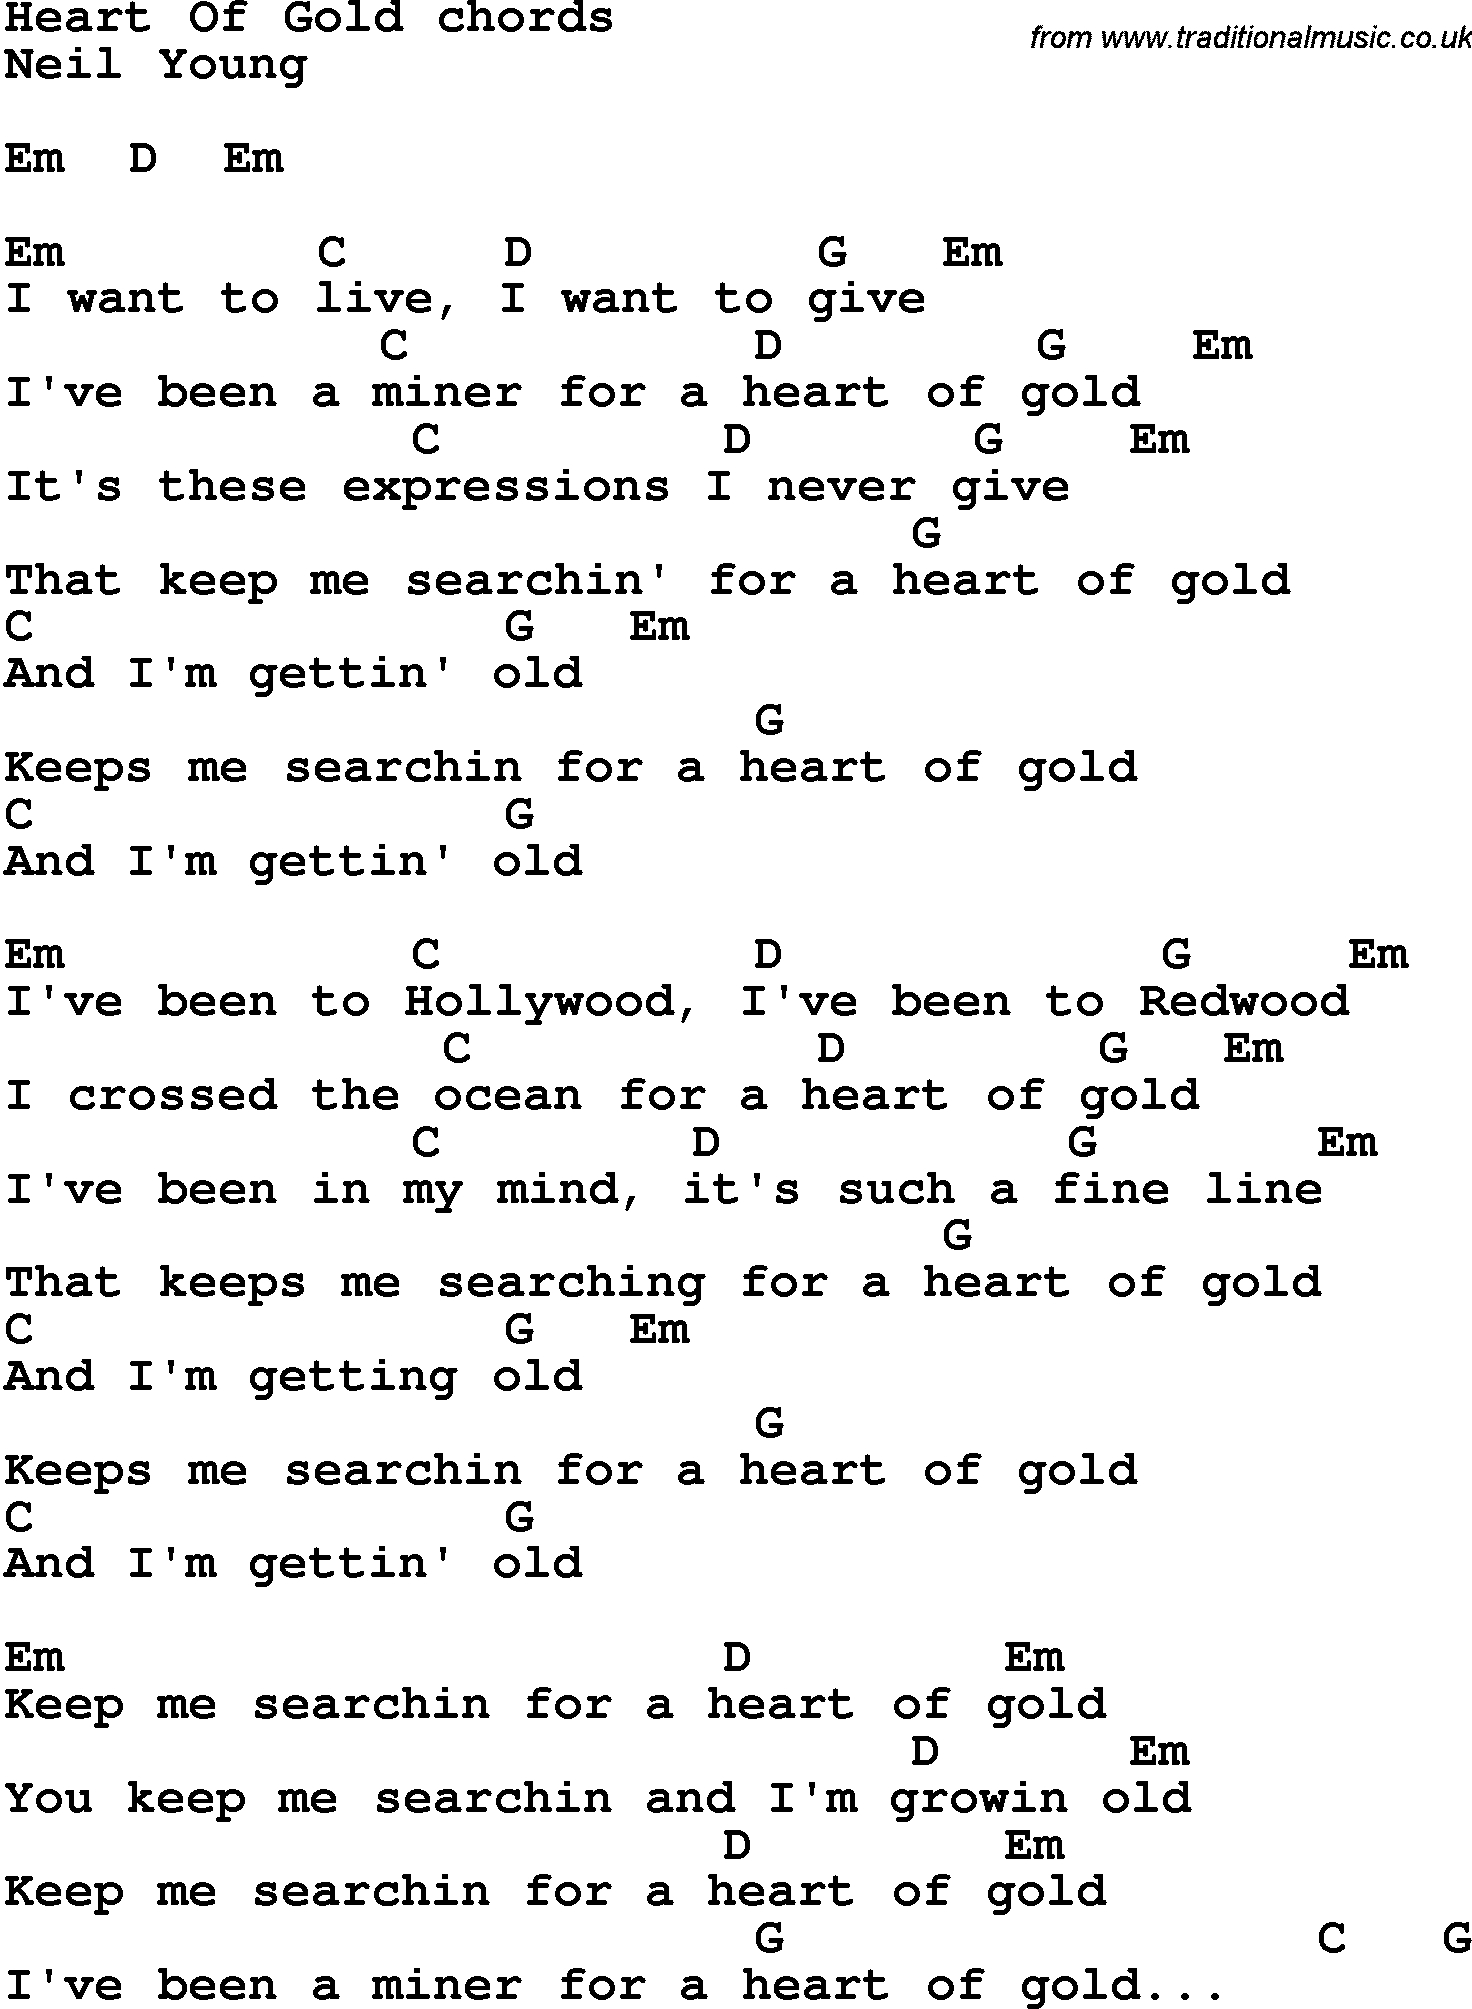 Heart Of Gold Chords Song Lyrics With Guitar Chords For Heart Of Gold